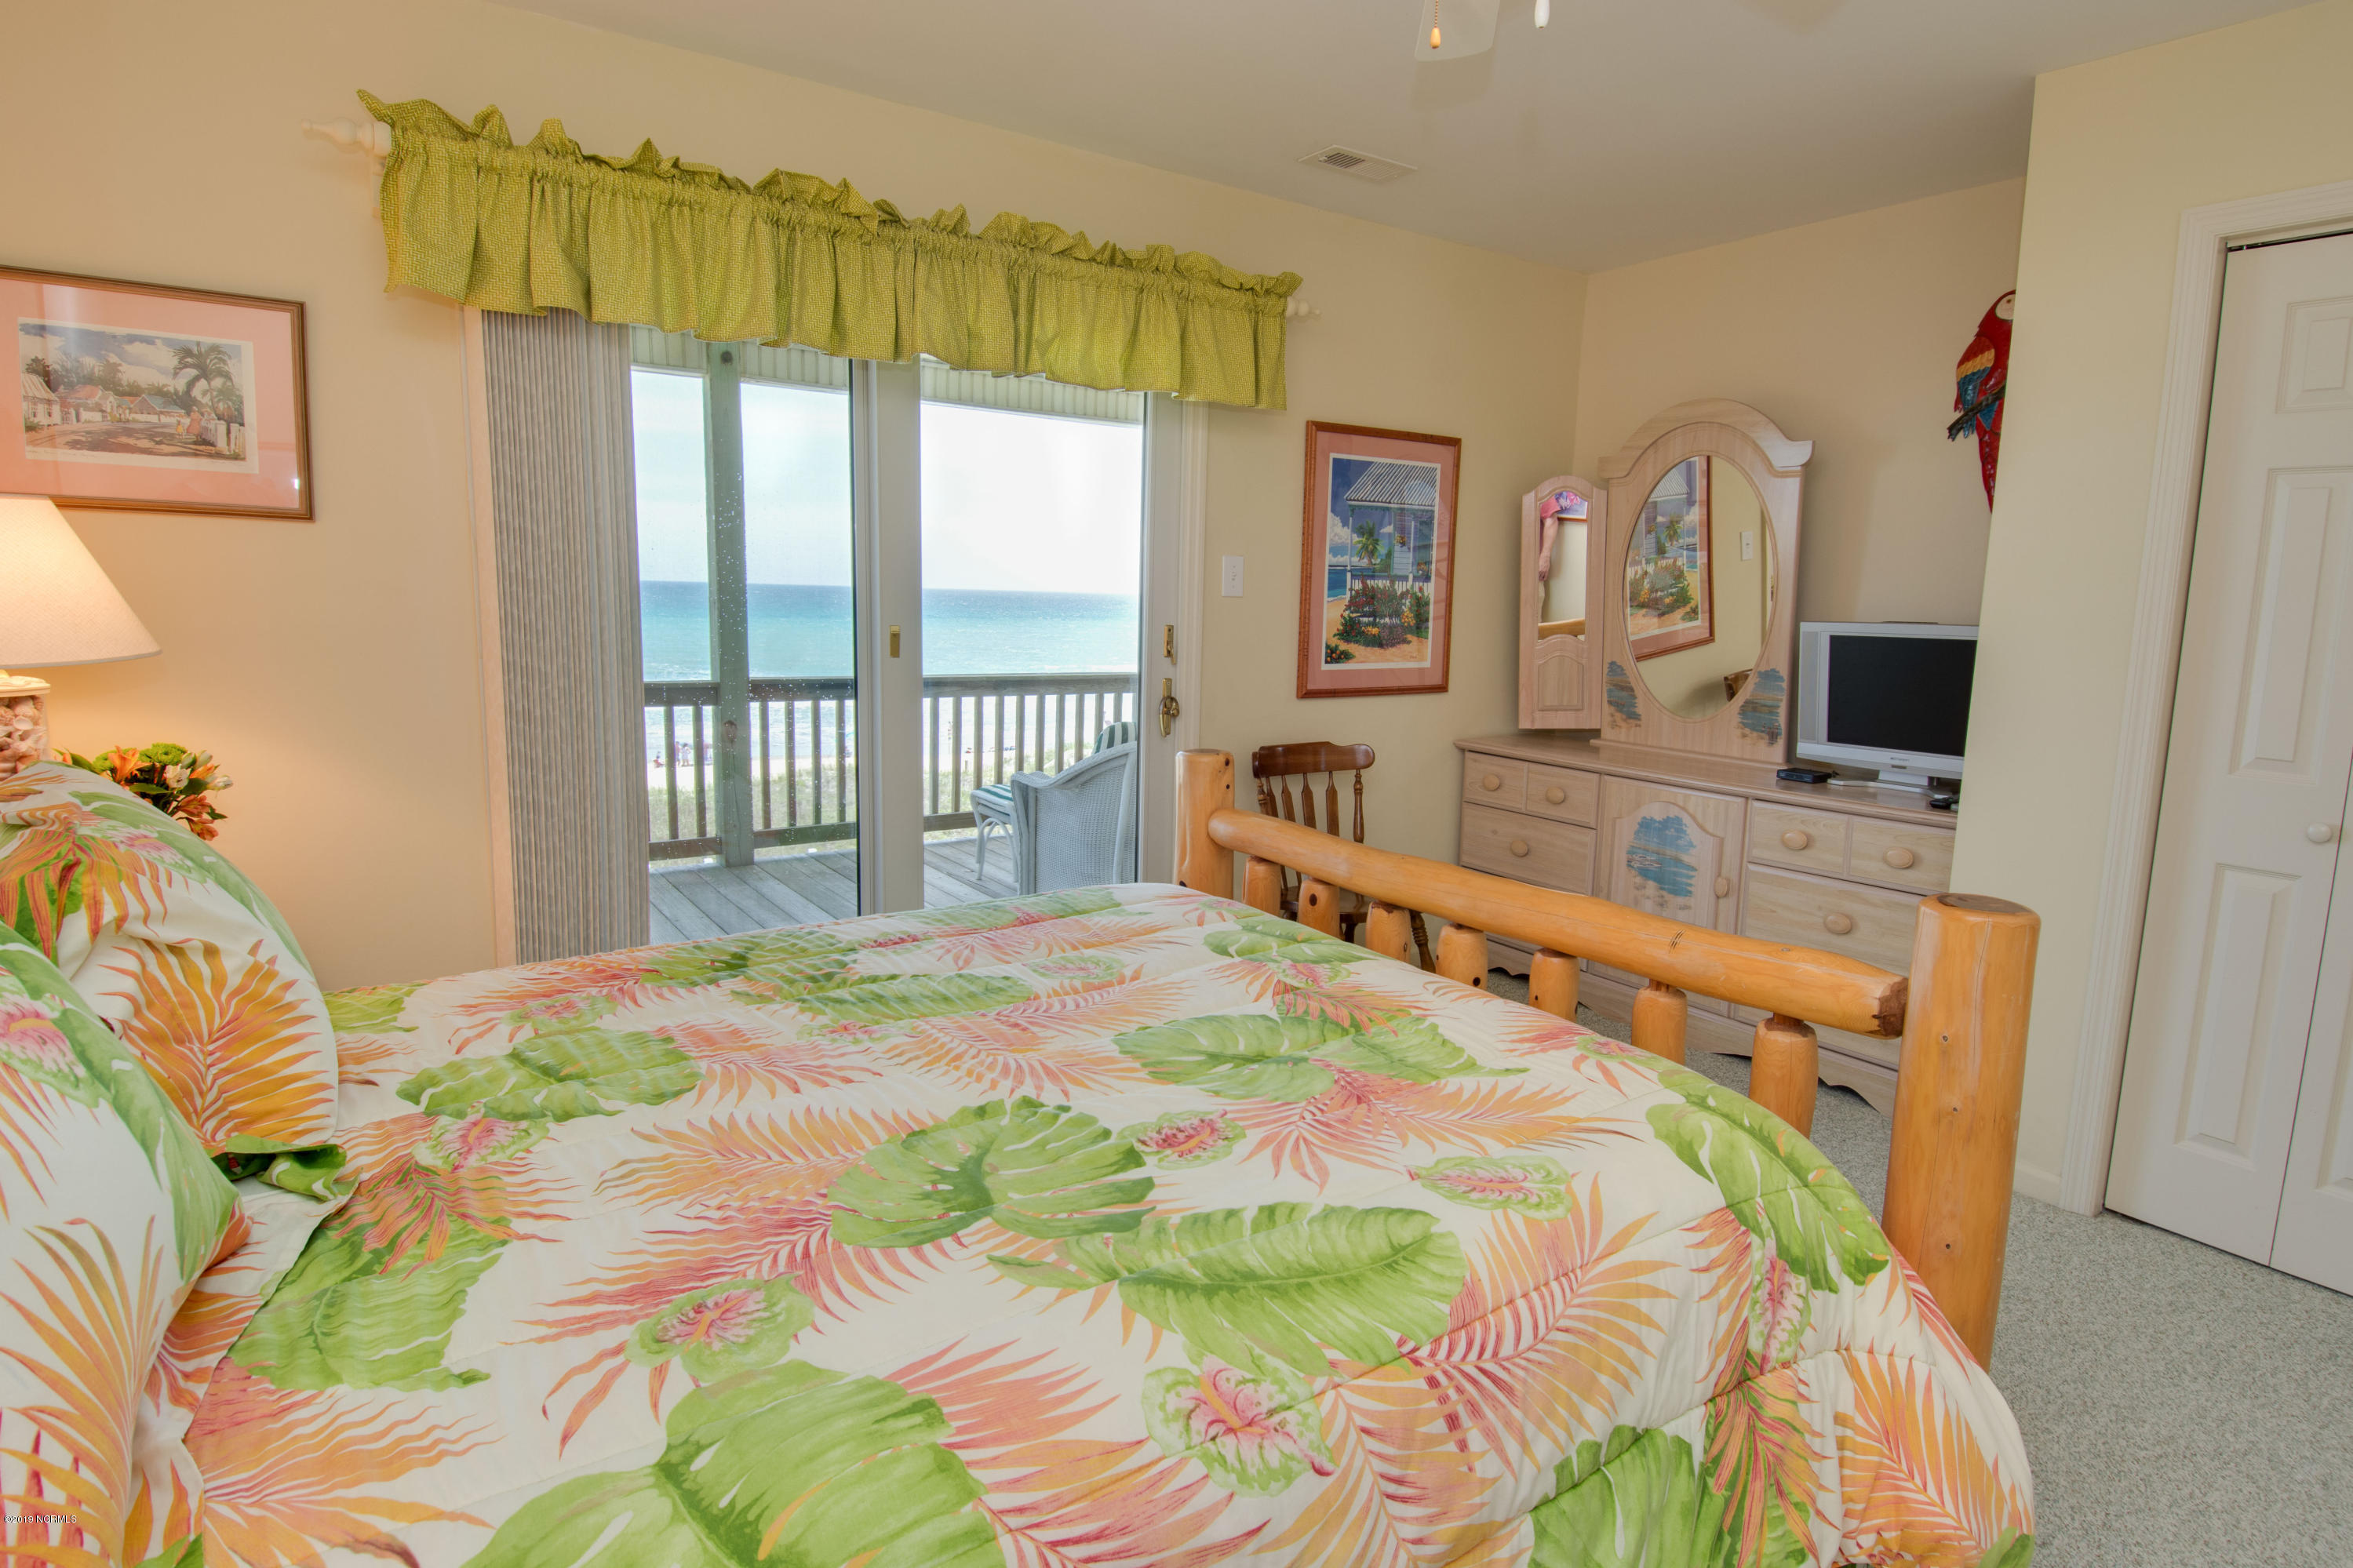 6715 Ocean Drive, Emerald Isle, North Carolina 28594, 6 Bedrooms Bedrooms, 15 Rooms Rooms,7 BathroomsBathrooms,Single family residence,For sale,Ocean,100170150